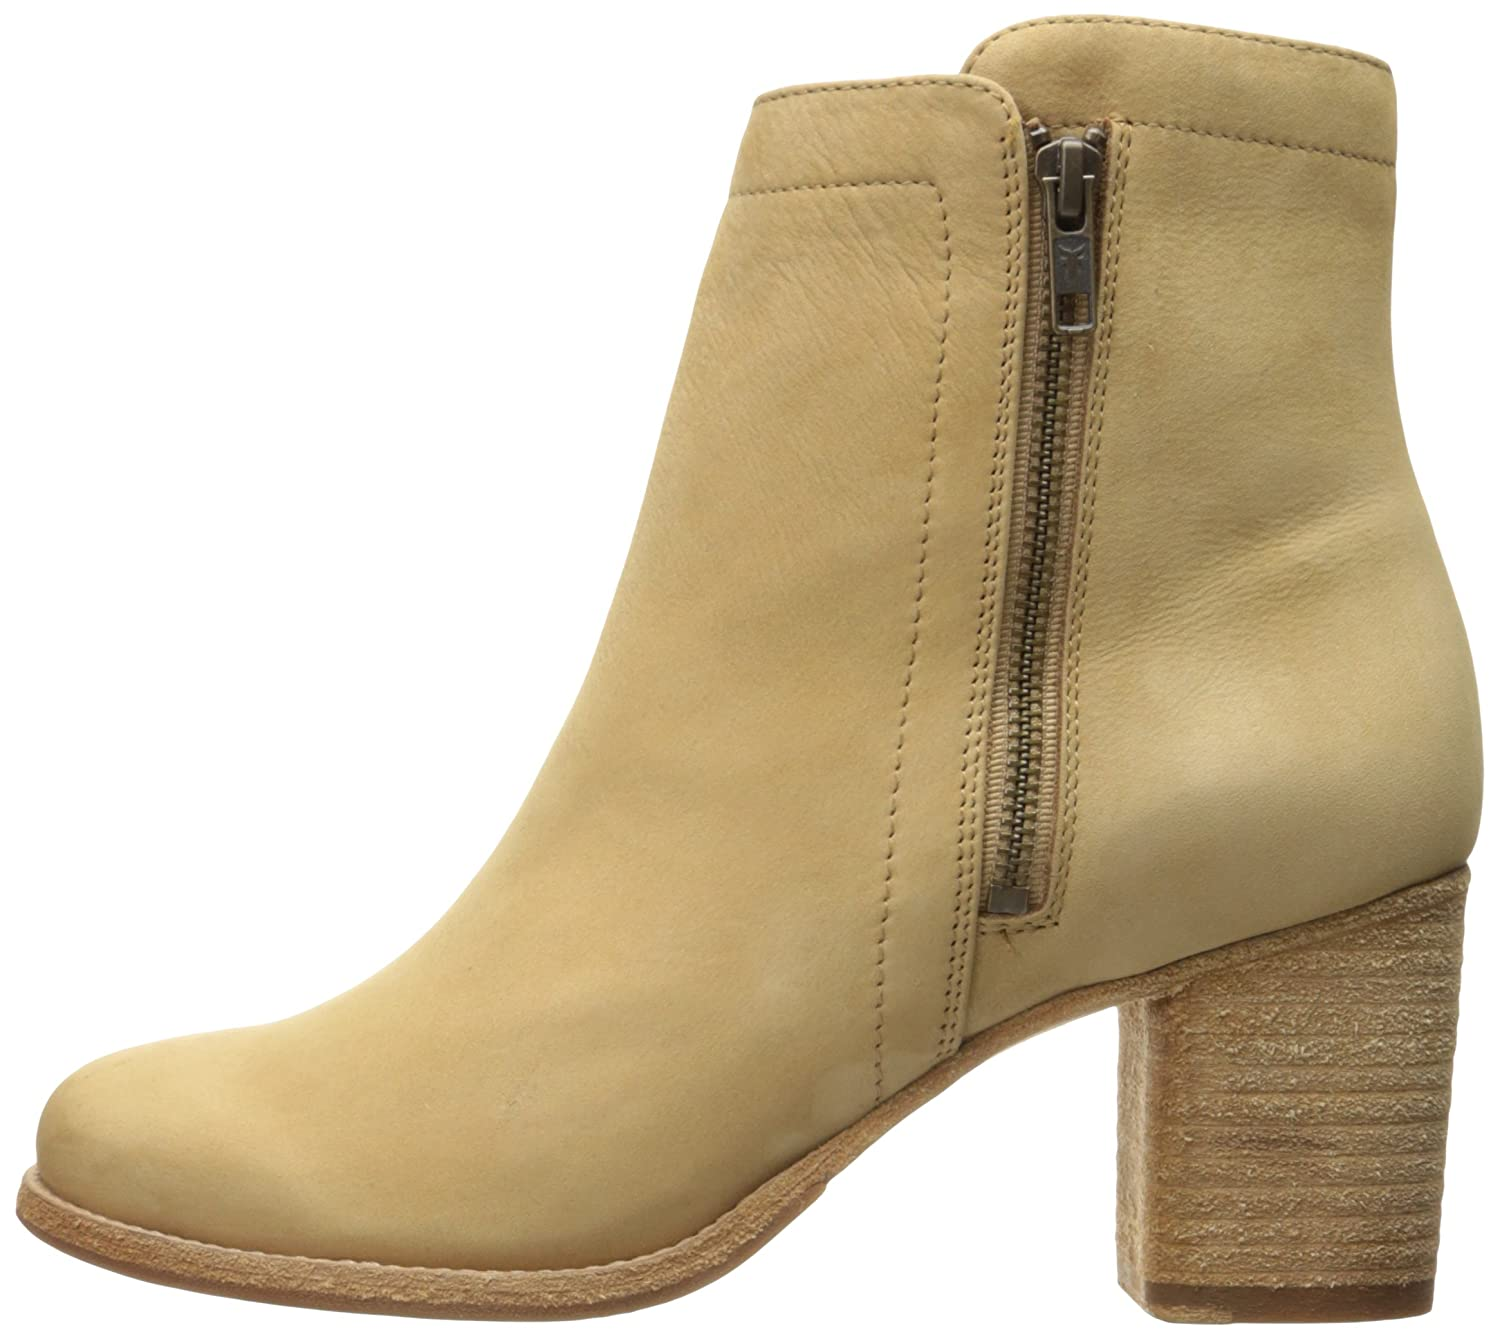 c0f9c2ace935 FRYE Women s Addie Double Zip Boot Boot Boot B01H4X820A 7.5 B(M) US ...